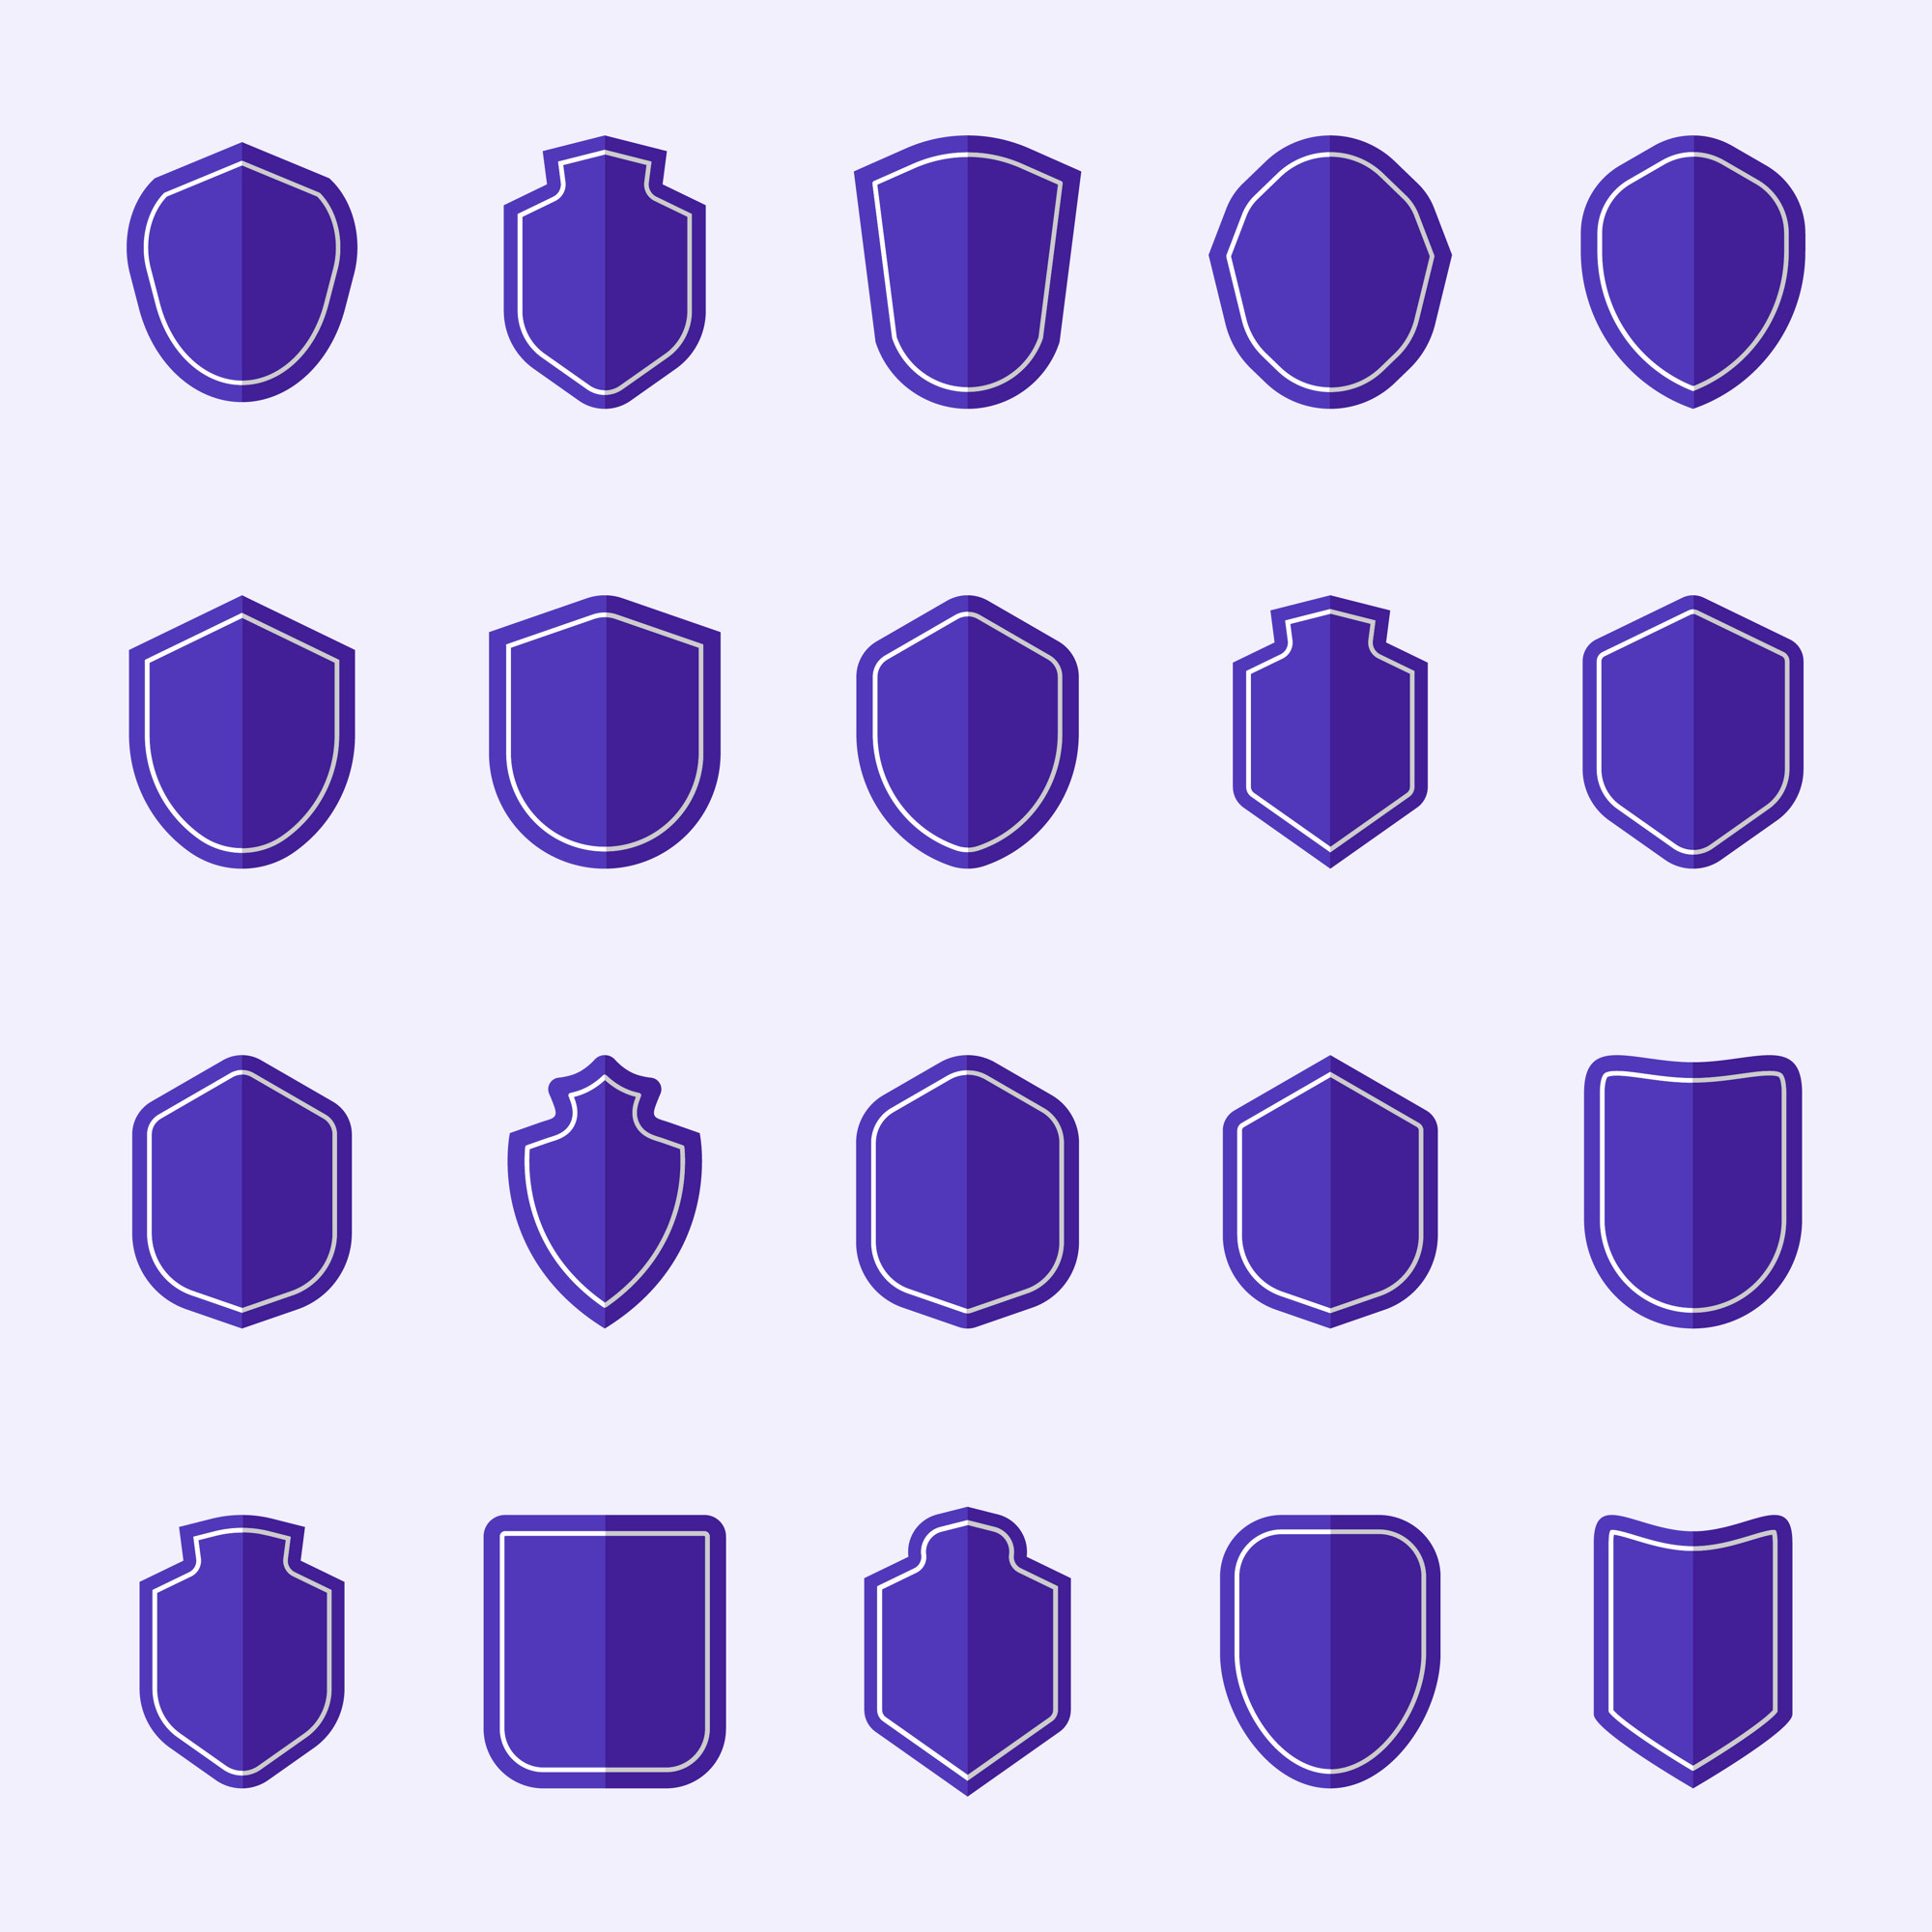 Set of purple shield icon vectors